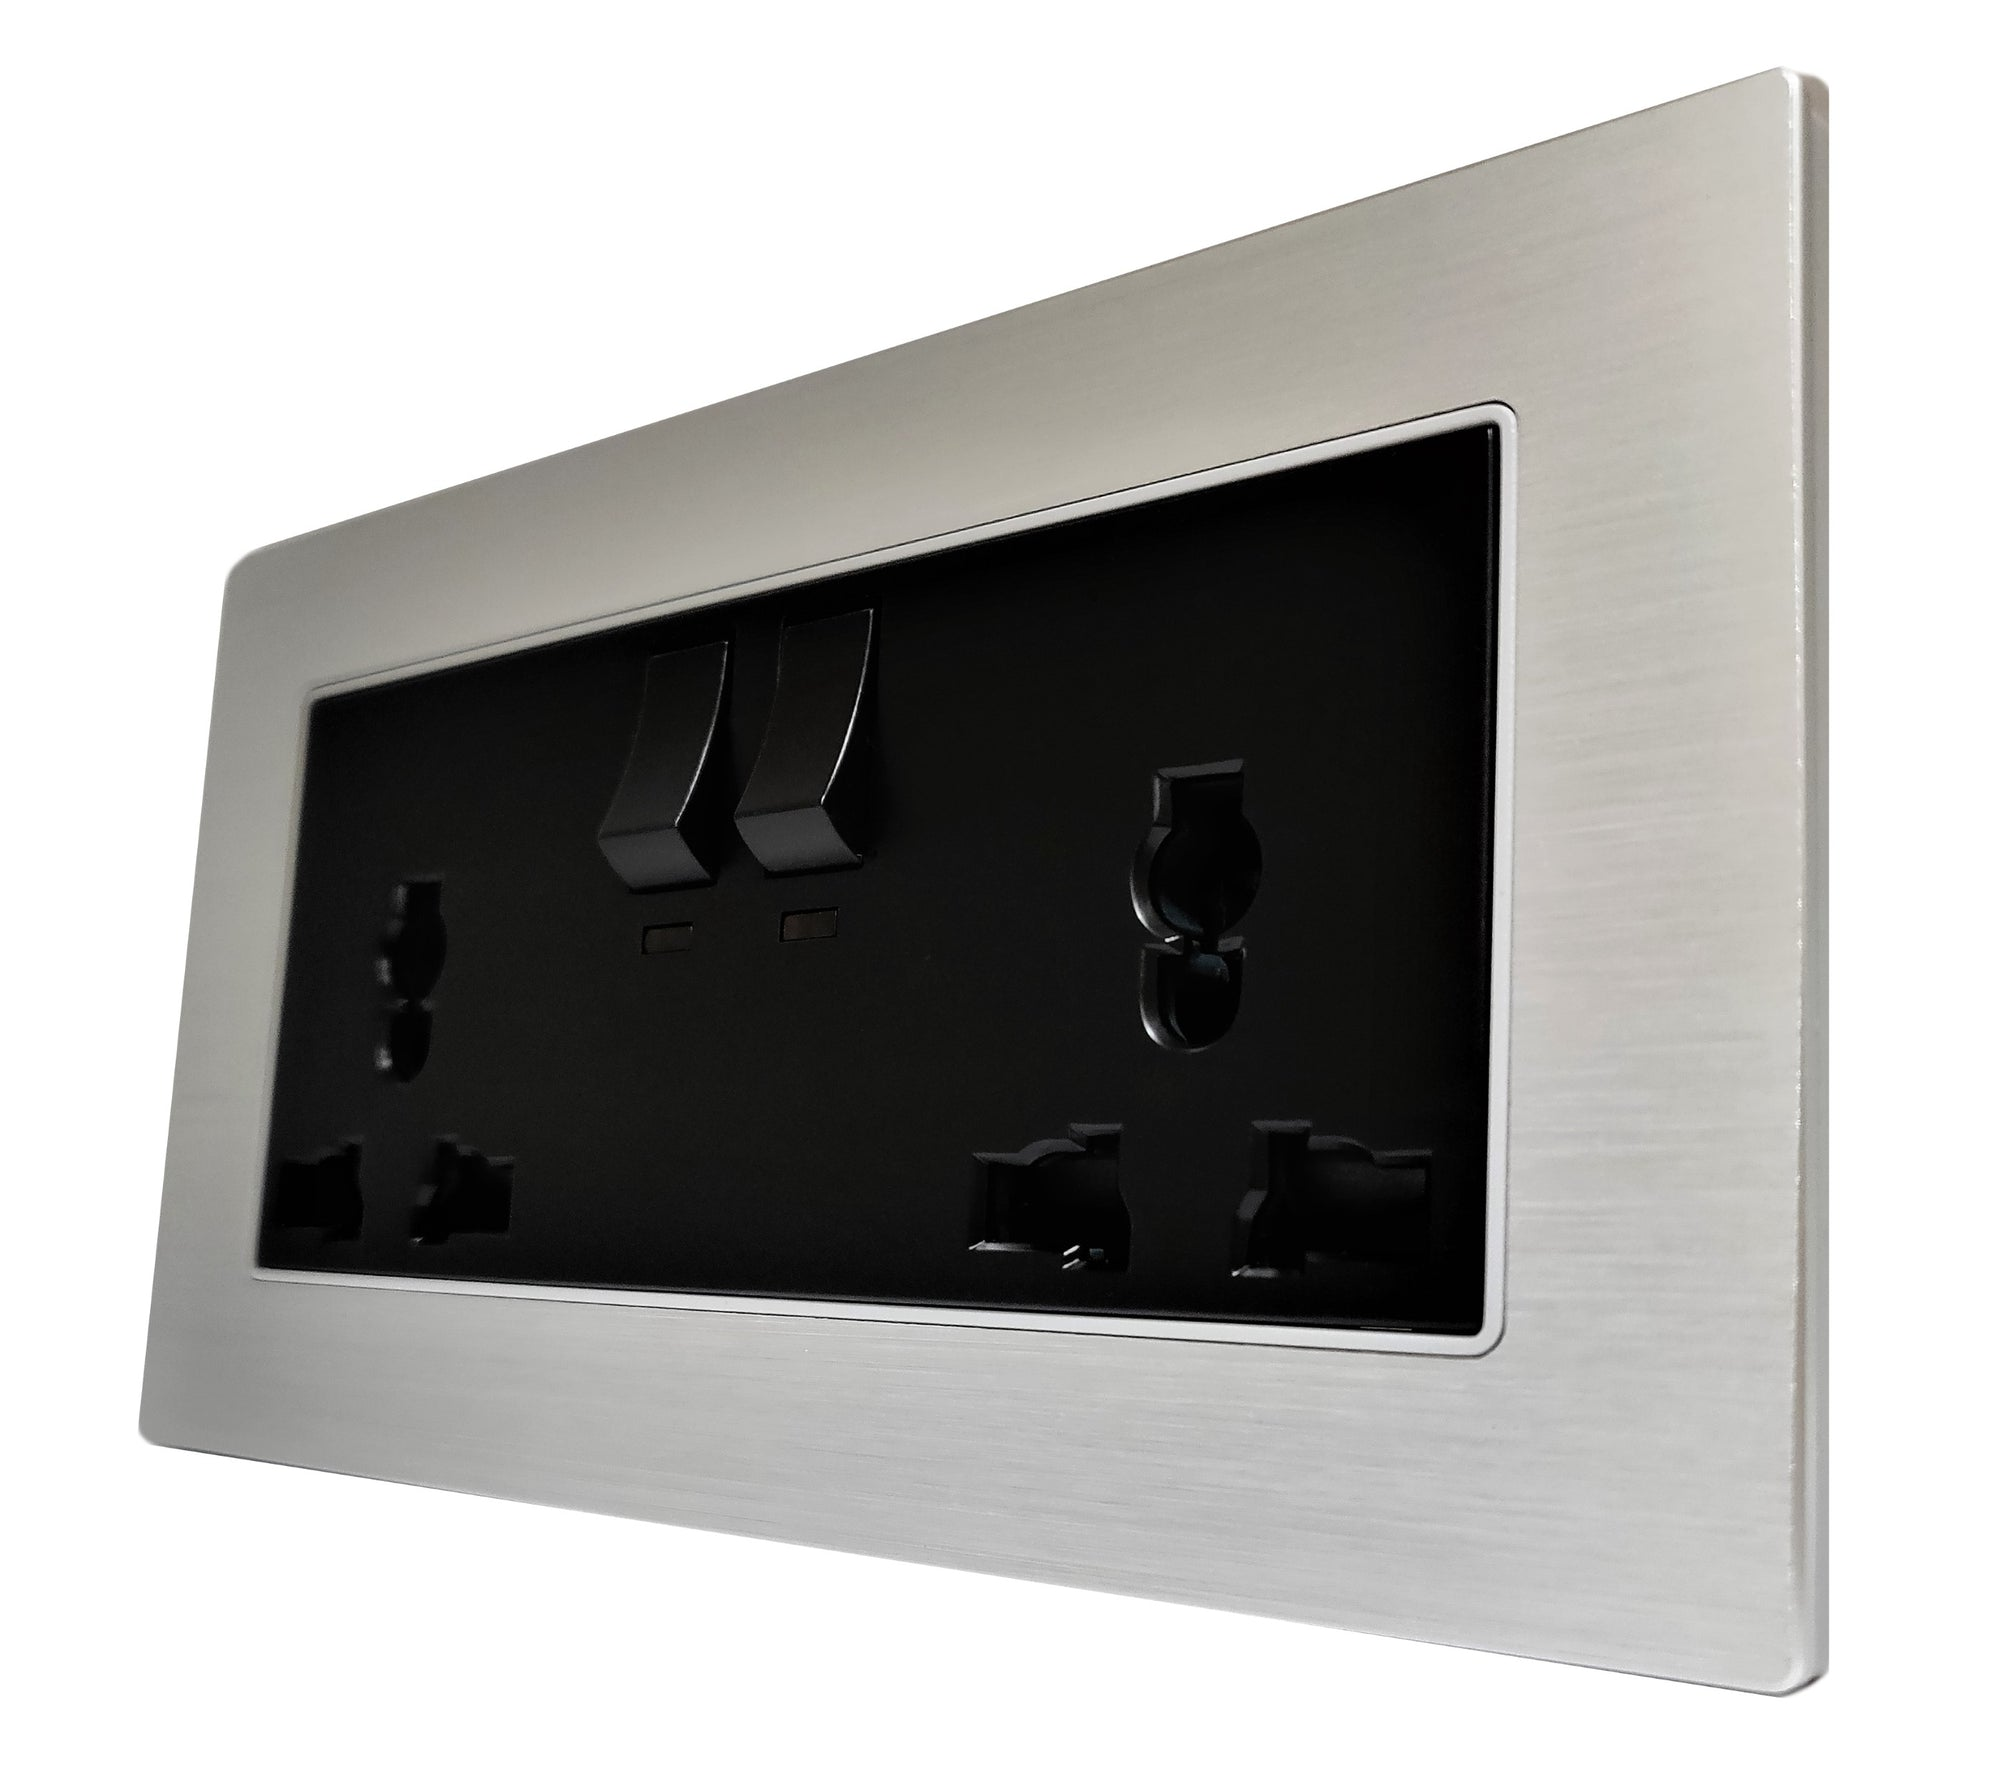 Double Universal Multi-Function AC Wall Power Socket in Silver Brushed Alum Frame & Black Centre